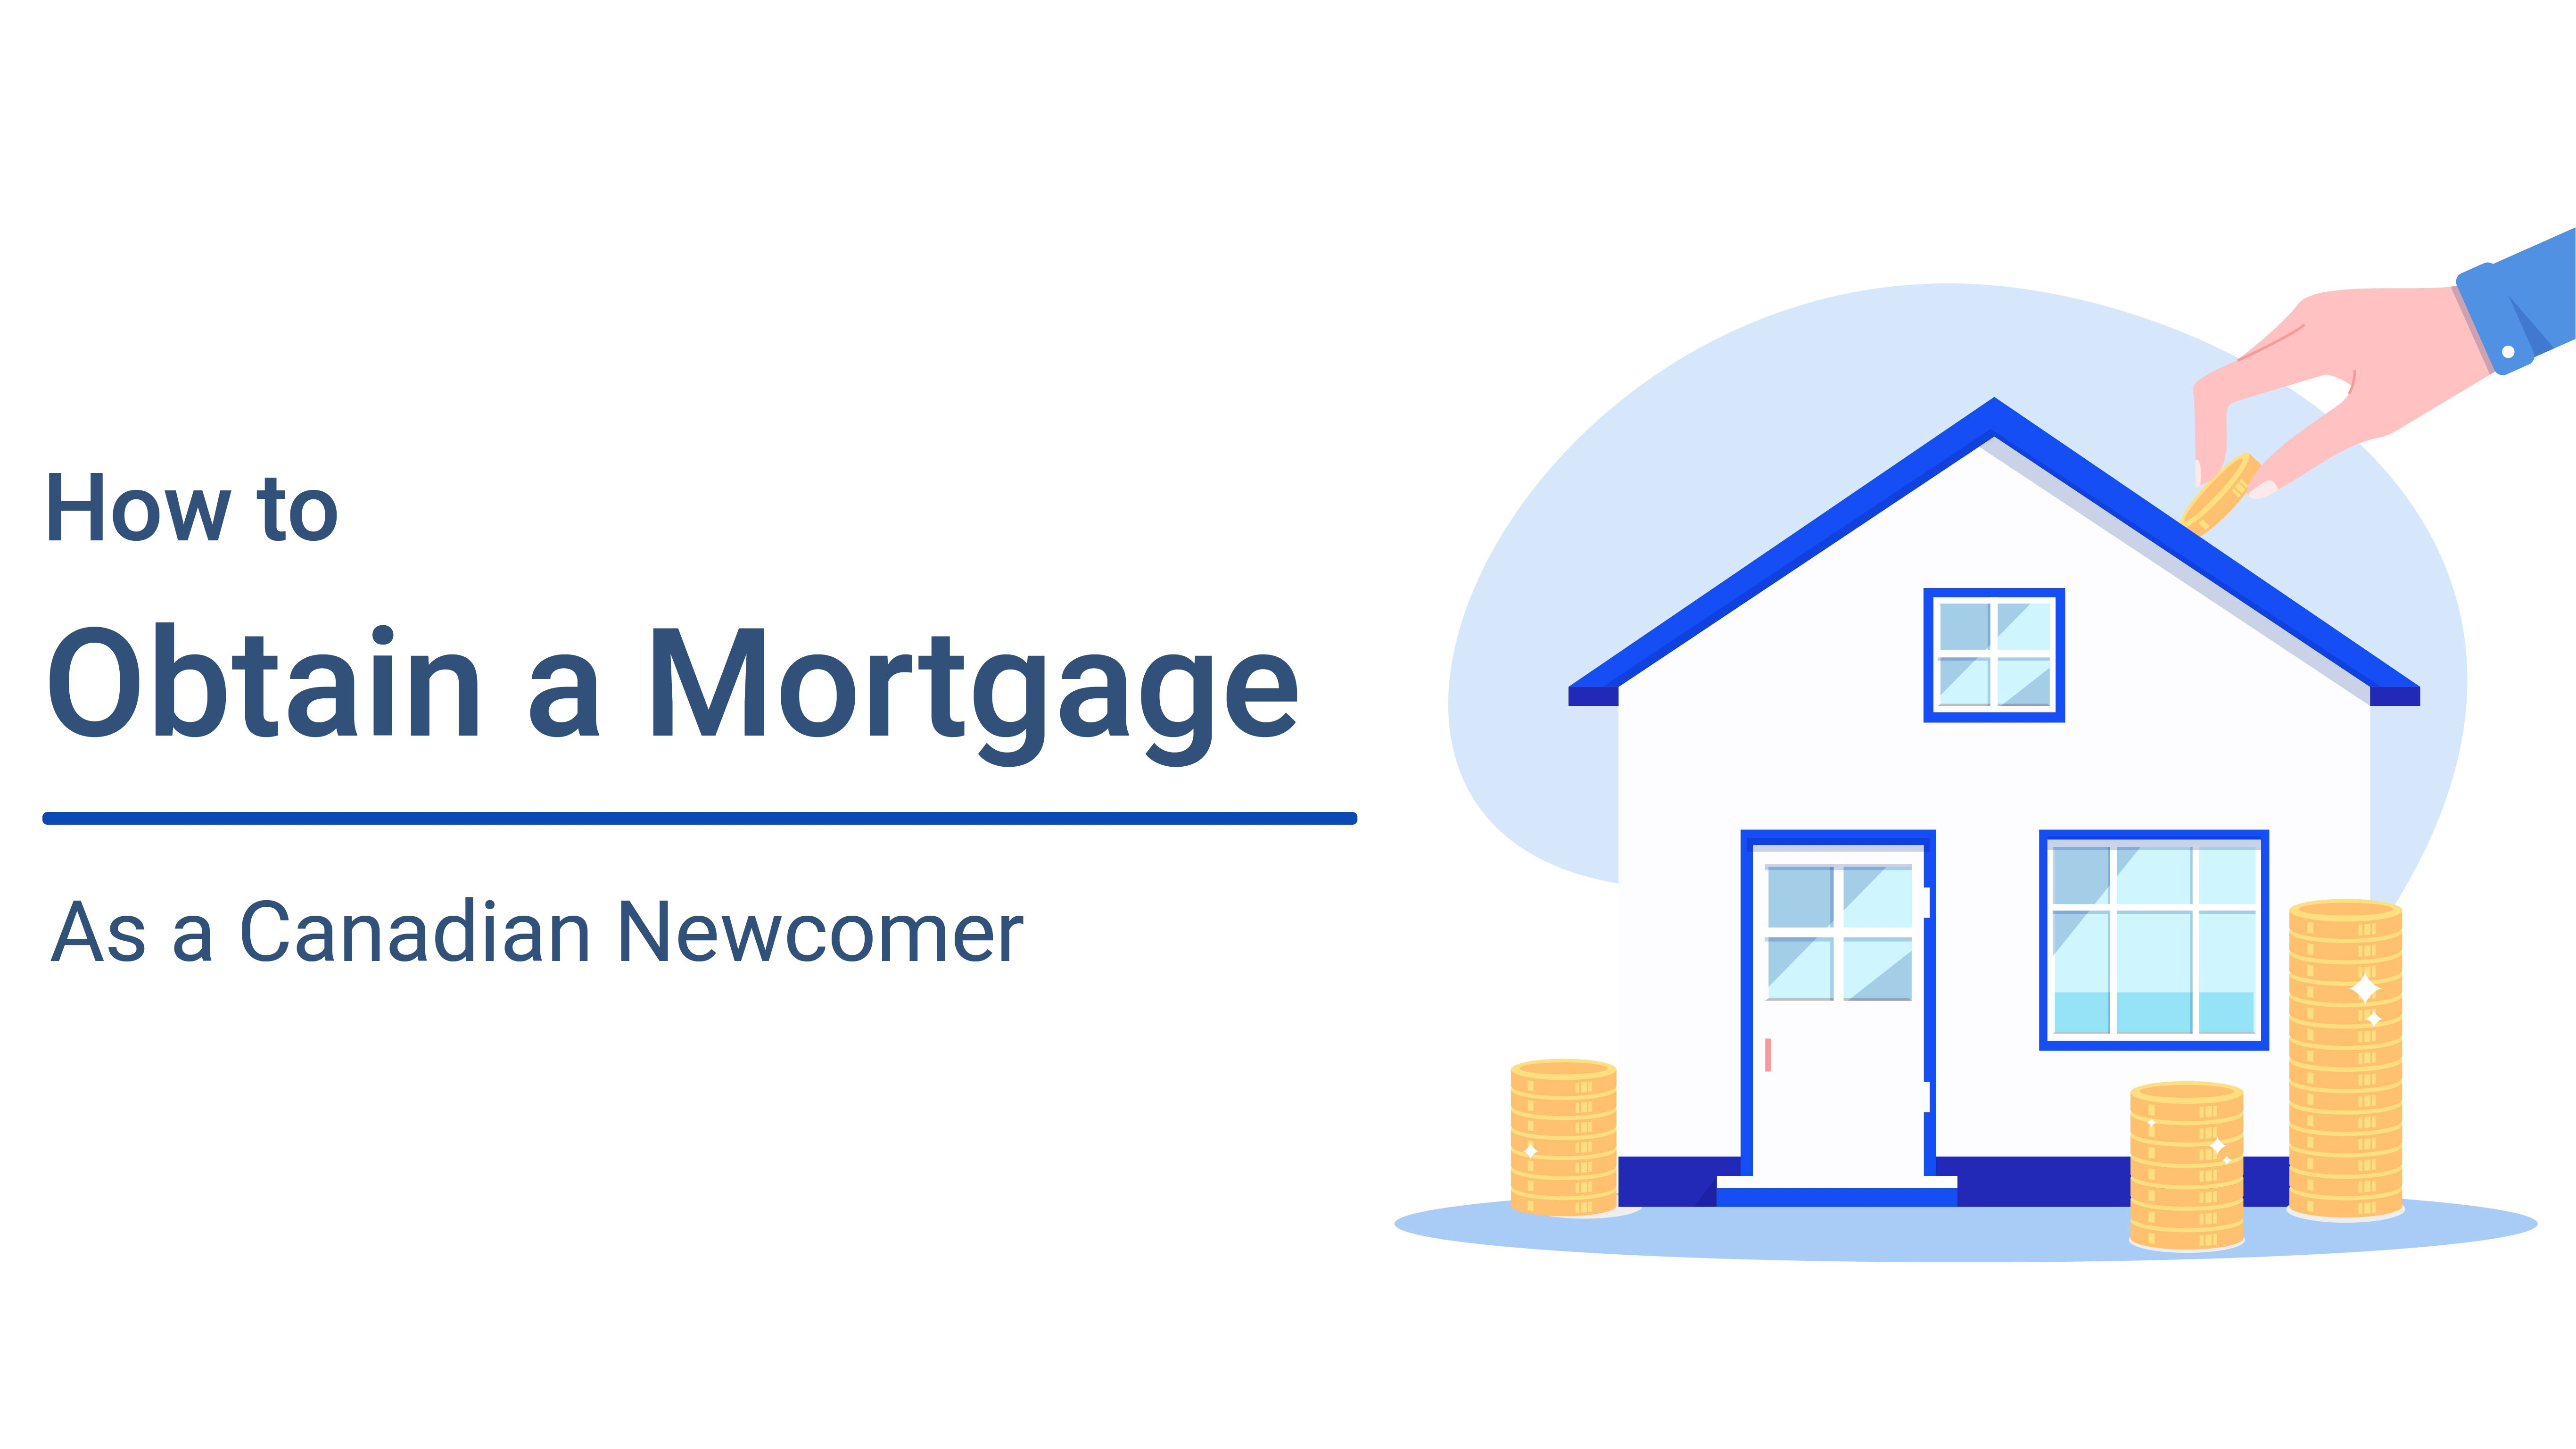 How Canadian Newcomers Can Obtain a Mortgage